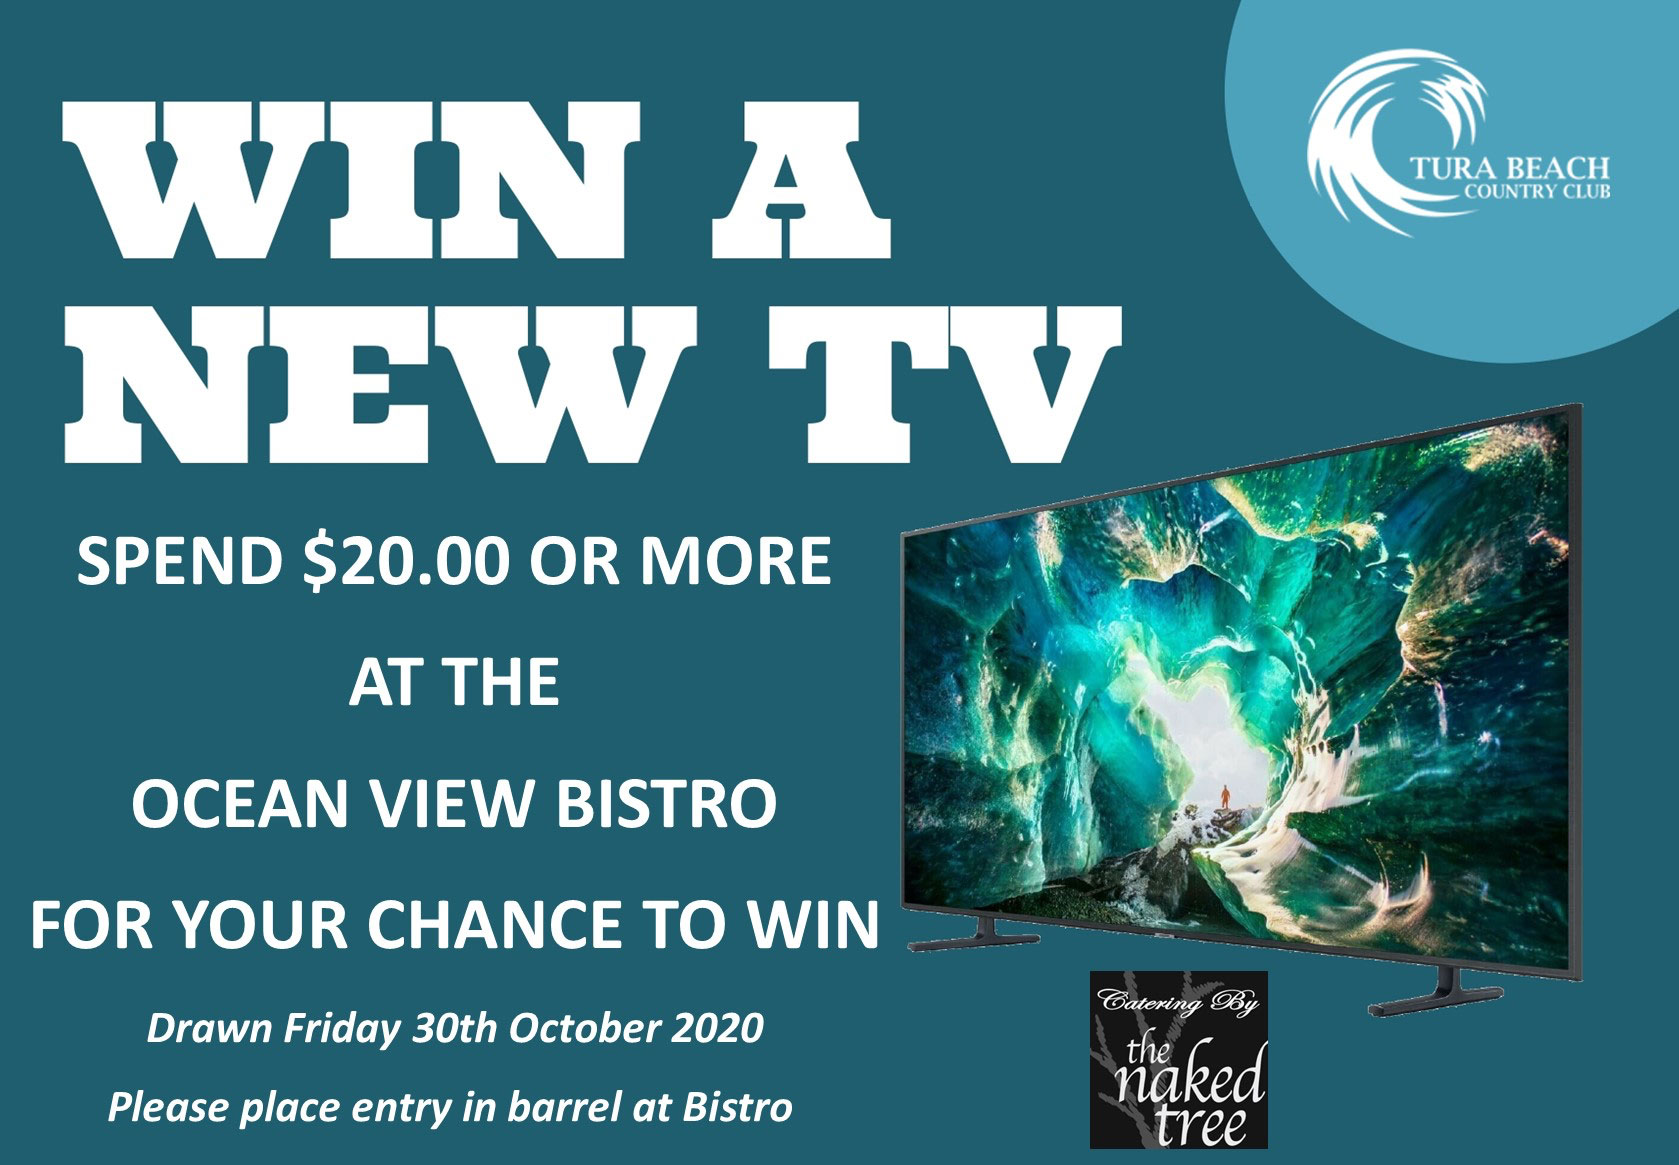 Win a new TV with Tura Beach Country Club